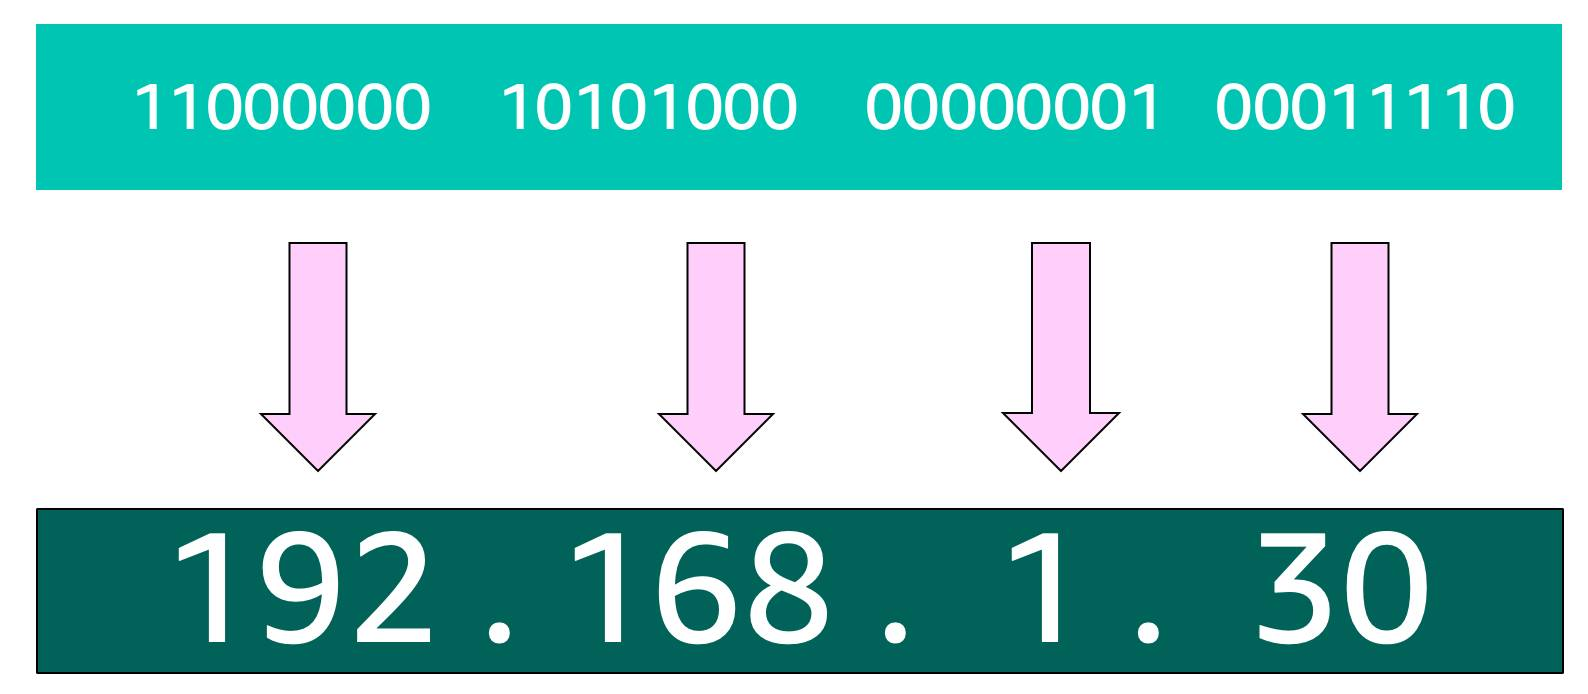 The 32-bit address above, grouped into four groups of 8 bits, and translated to decimal format: 192.168.1.30